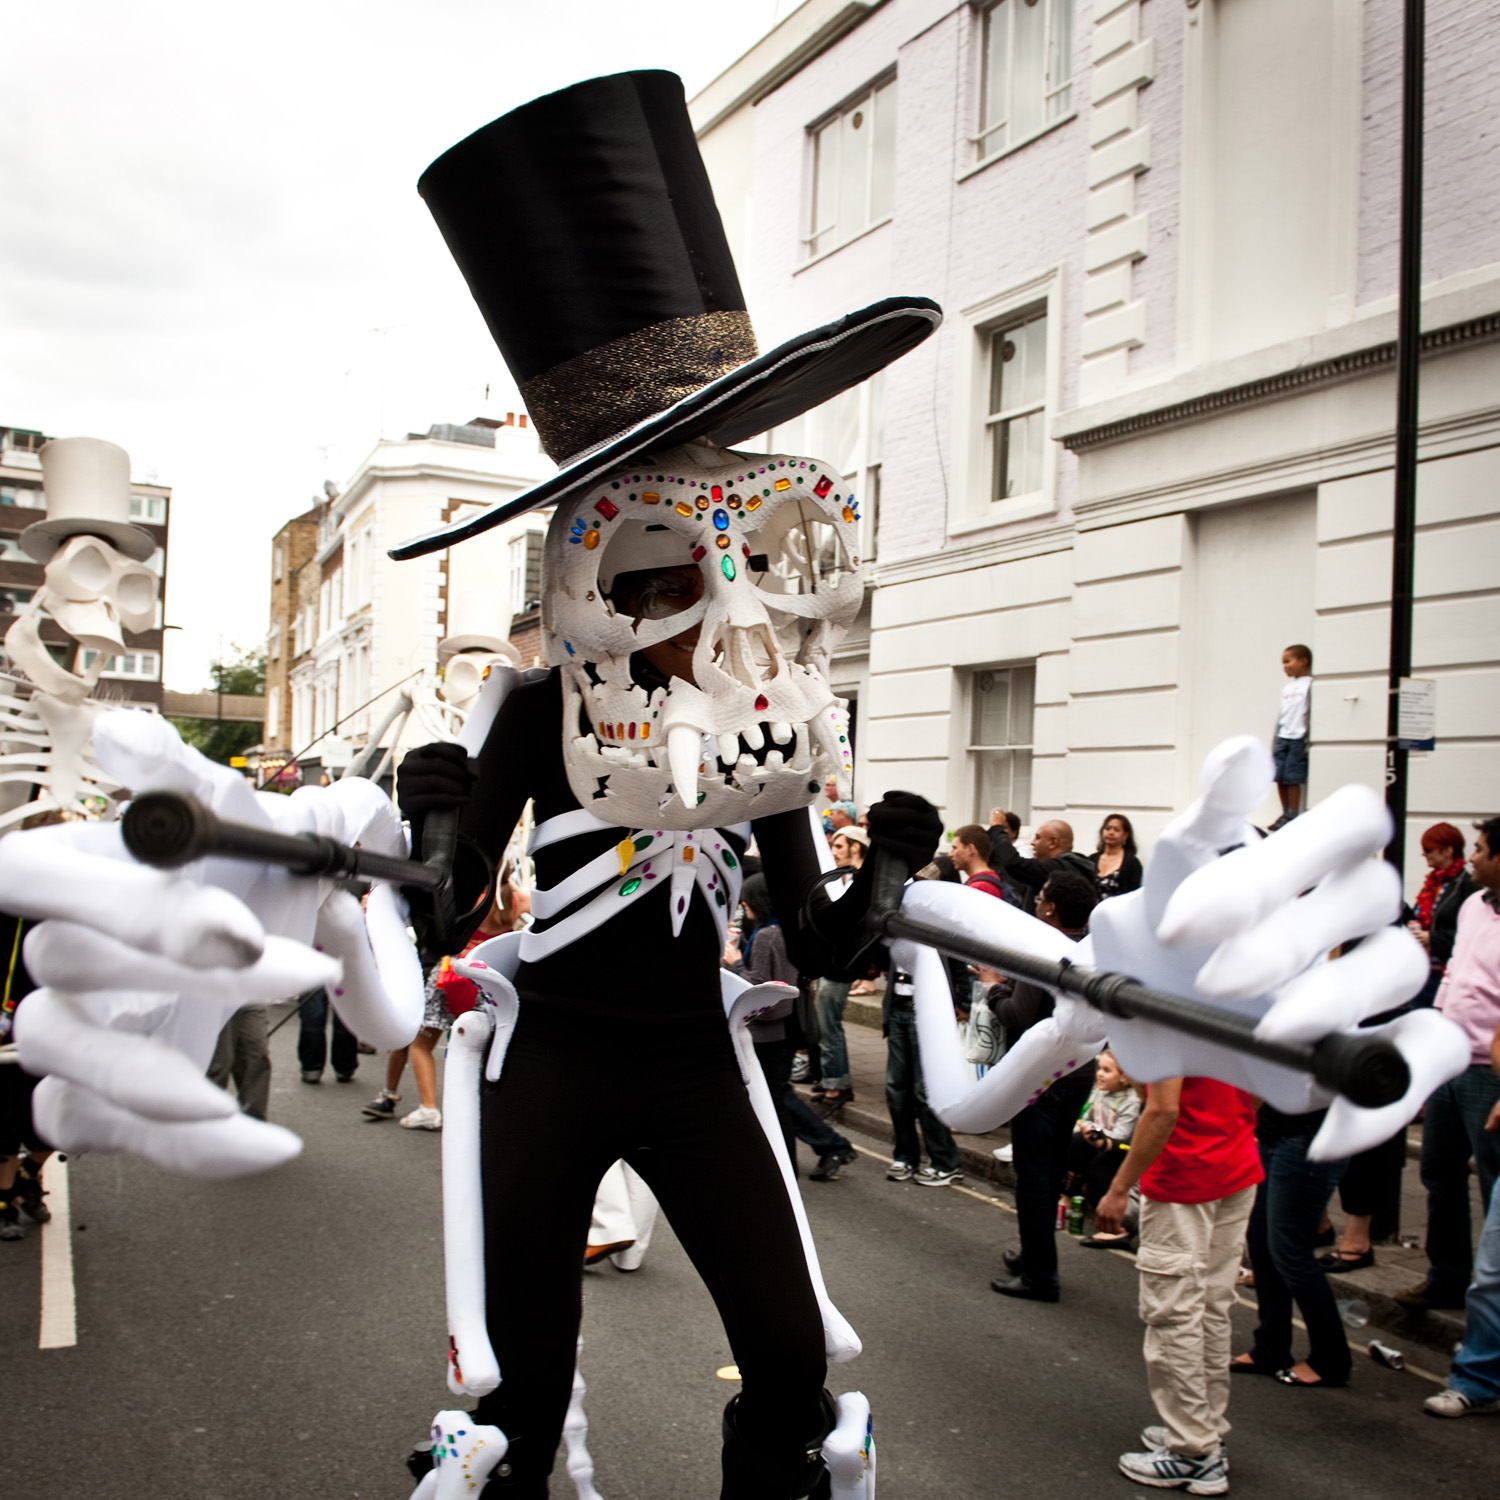 Carnival_the_rest_24